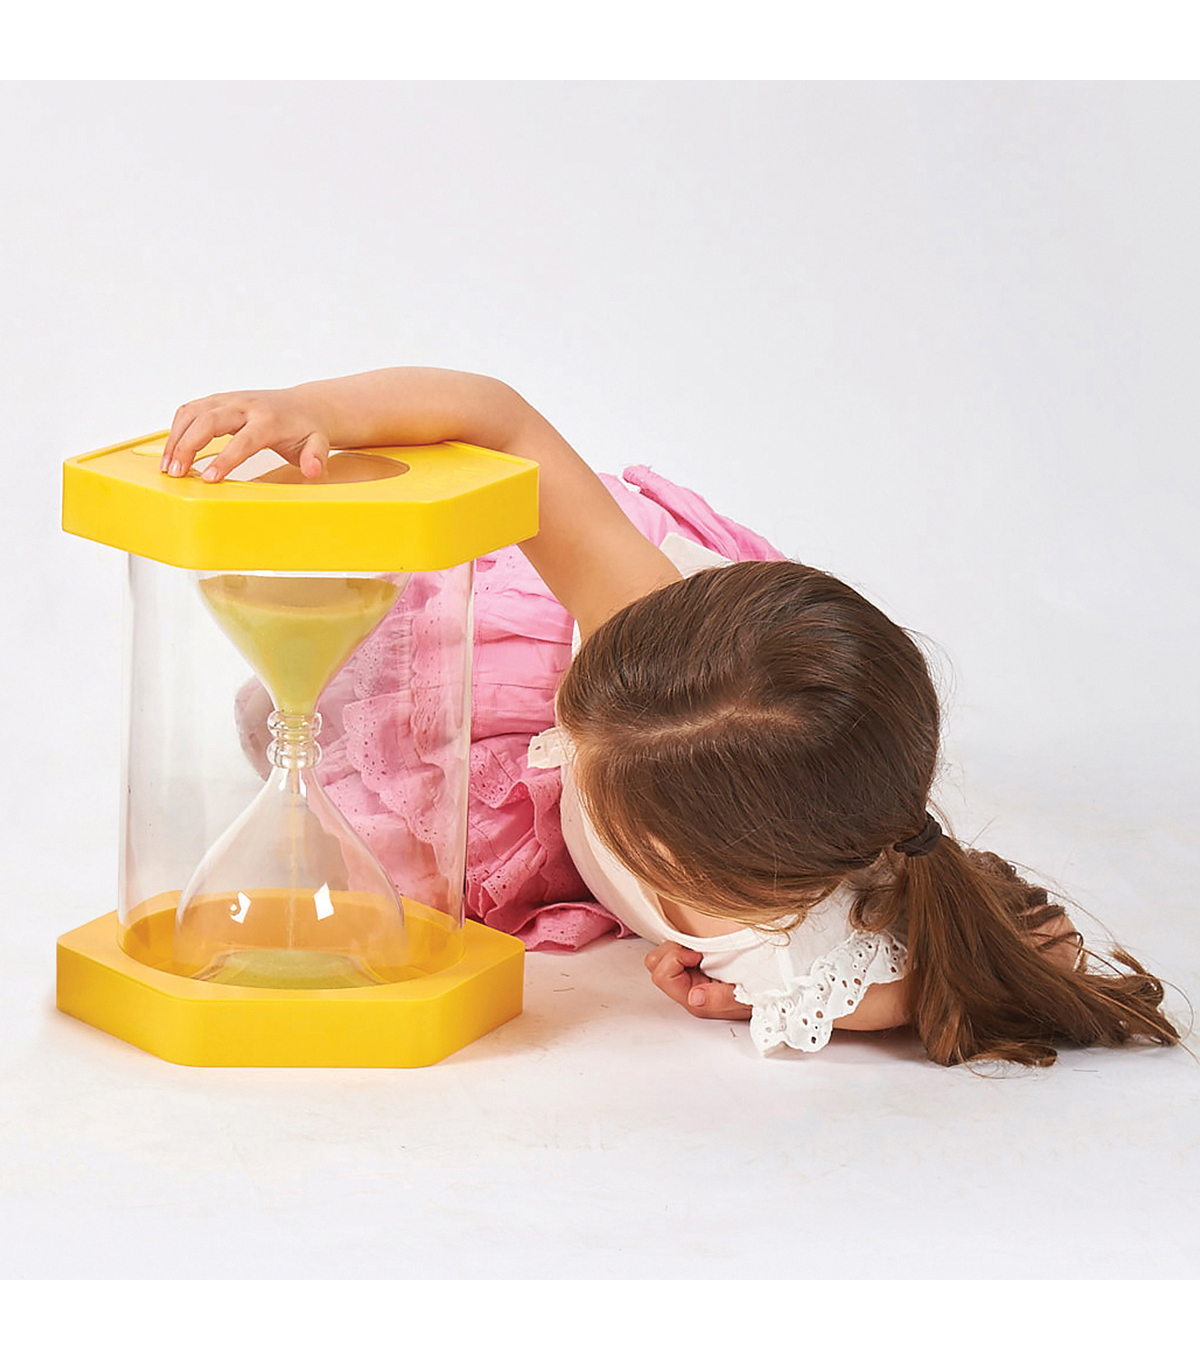 TickiT Giant ClearView Sand Timer, 3 Minute, Yellow